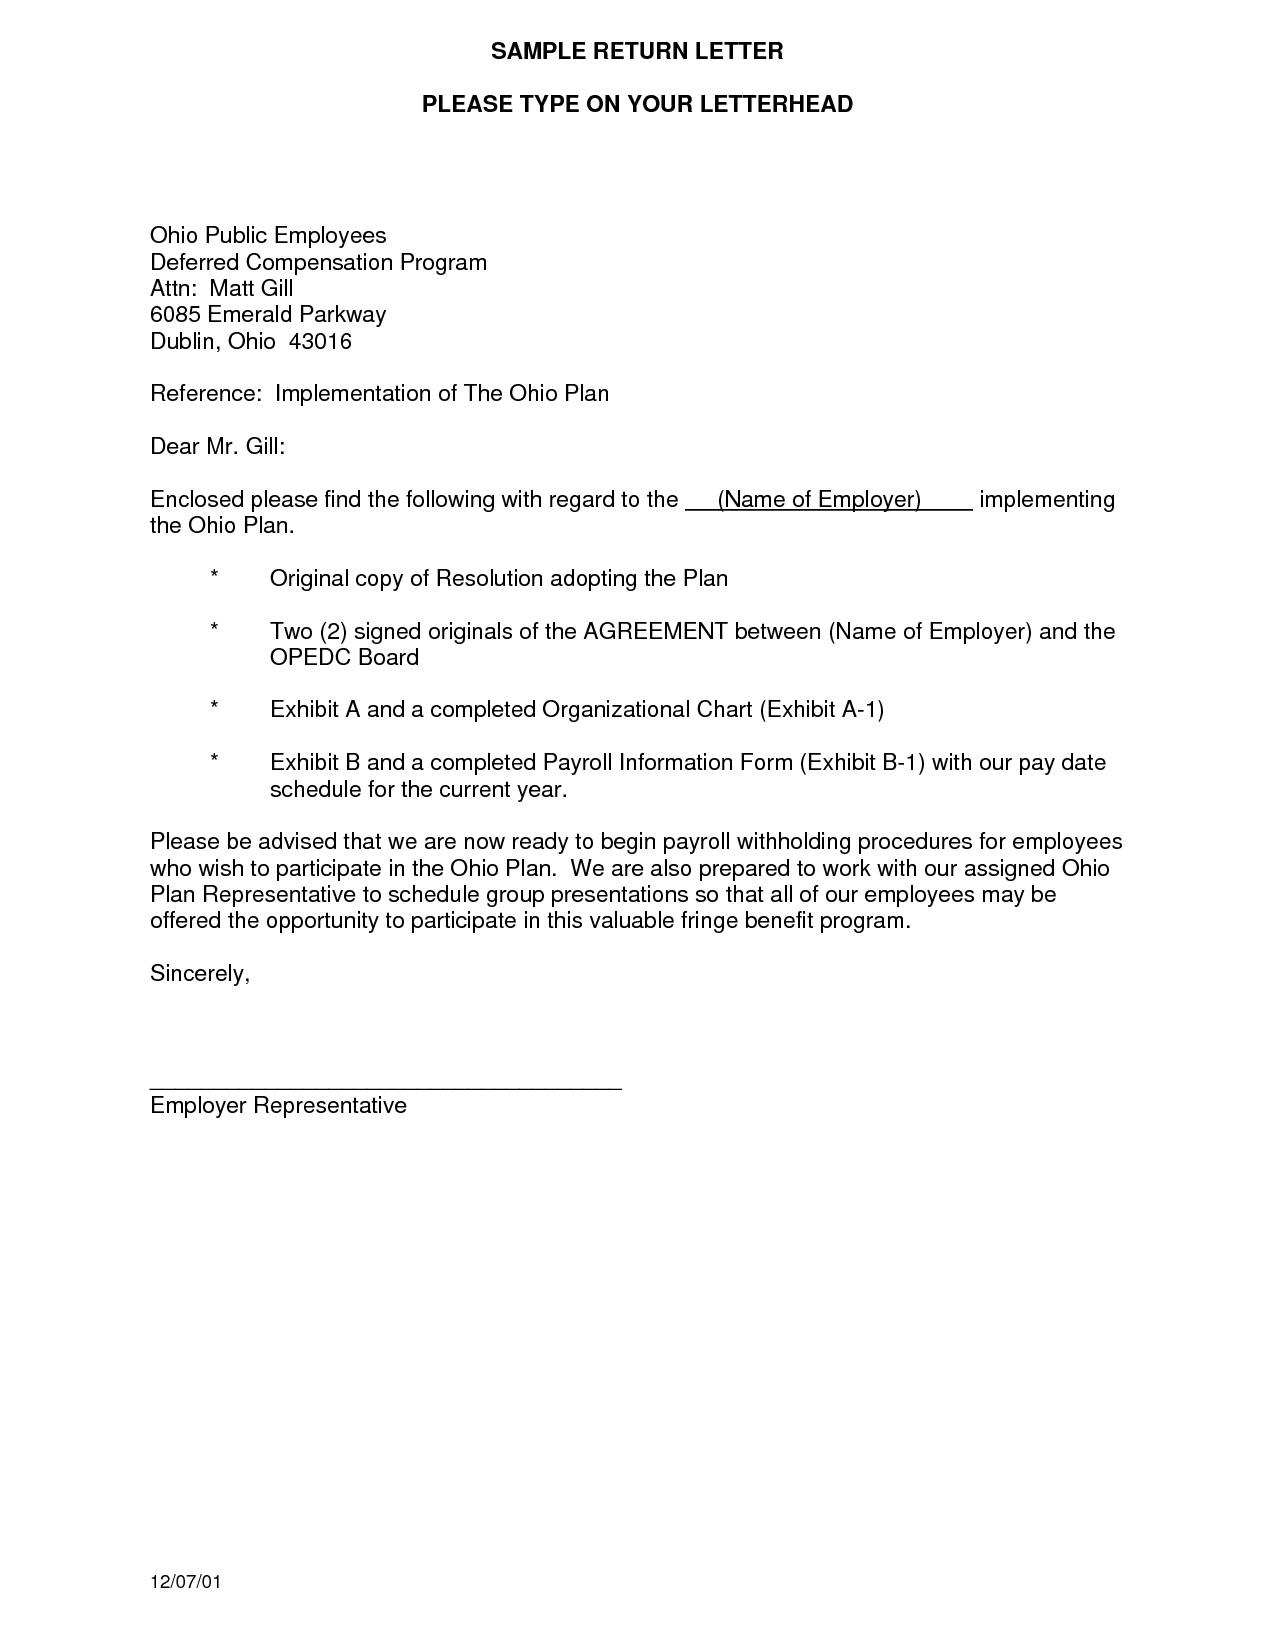 Refund Letter Sample Overpayment Duplicate Payment Template Amp